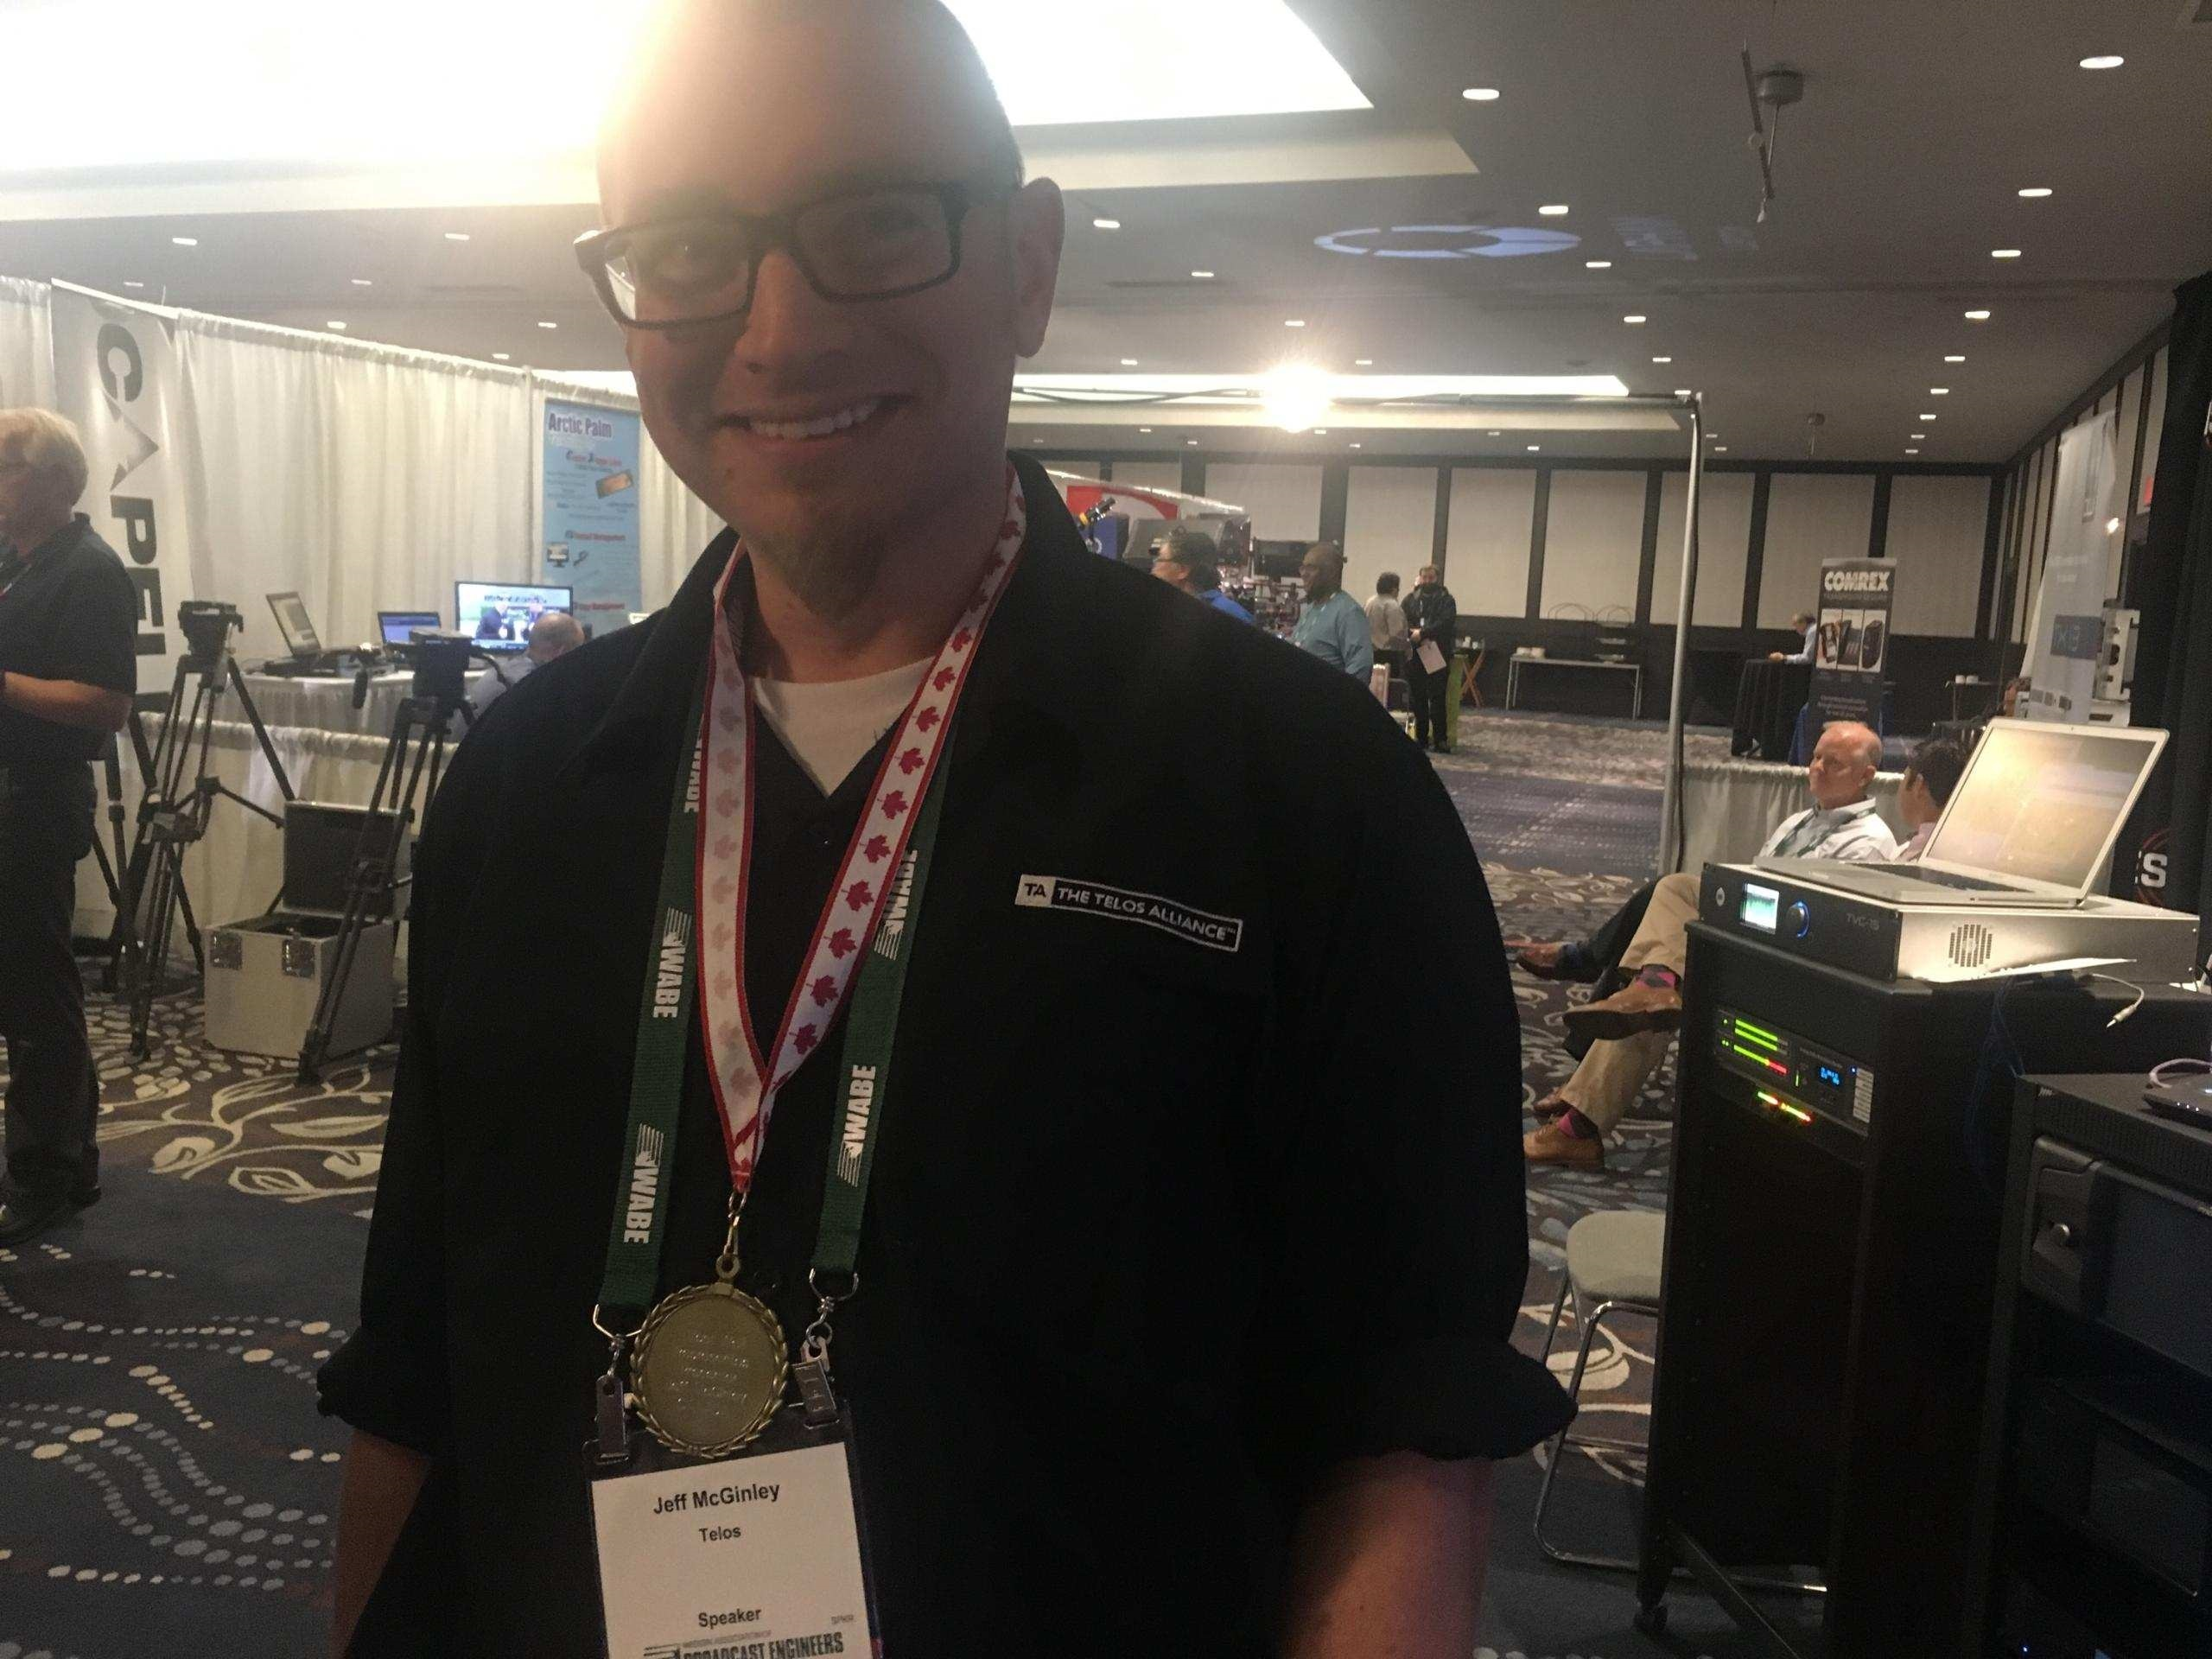 Jeff shows off his medal